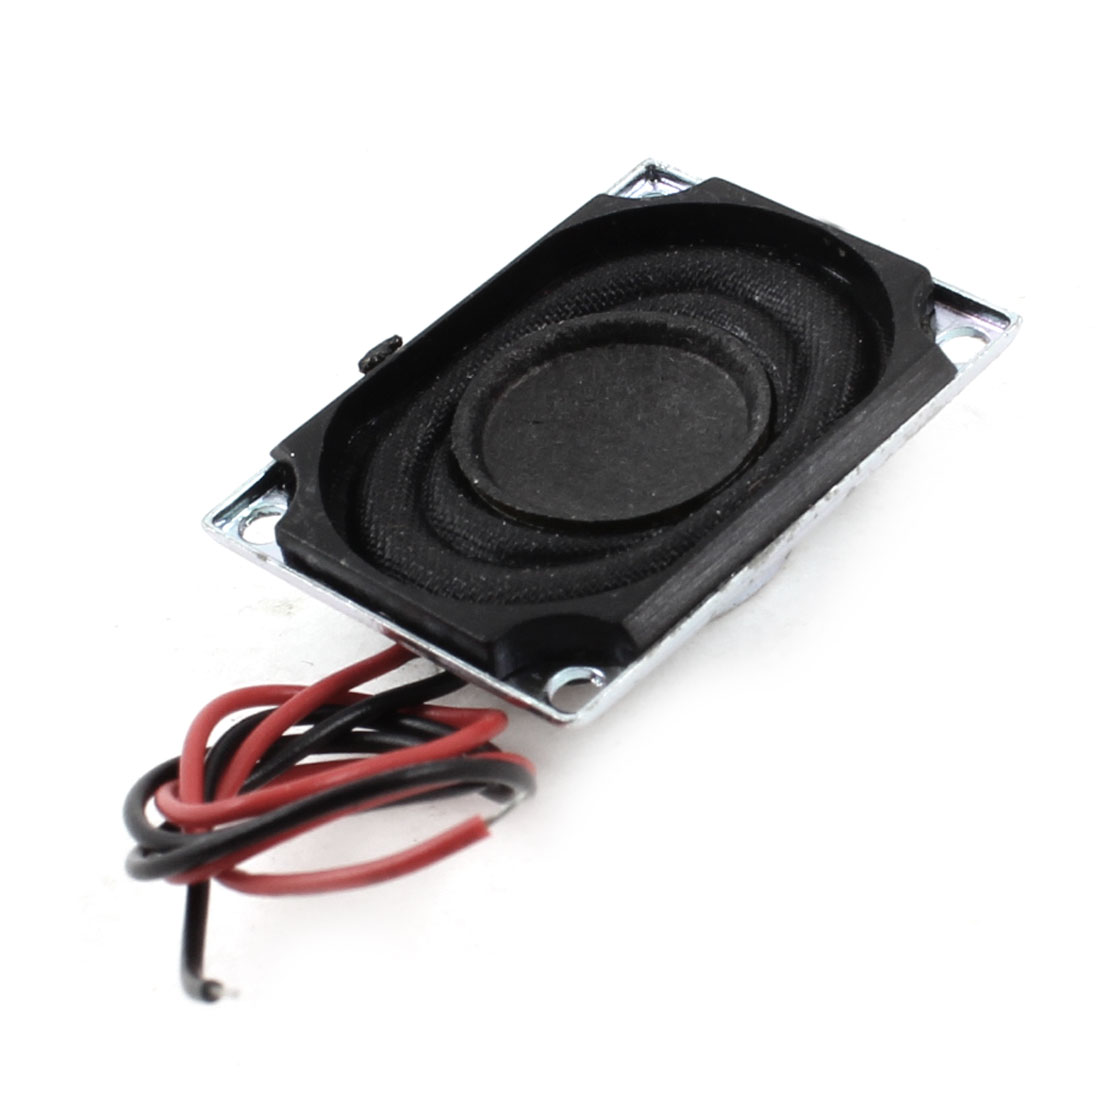 1.5W 8 Ohm Musica Player Magnetic Magnet Speaker 27mm x 20mm w Cable